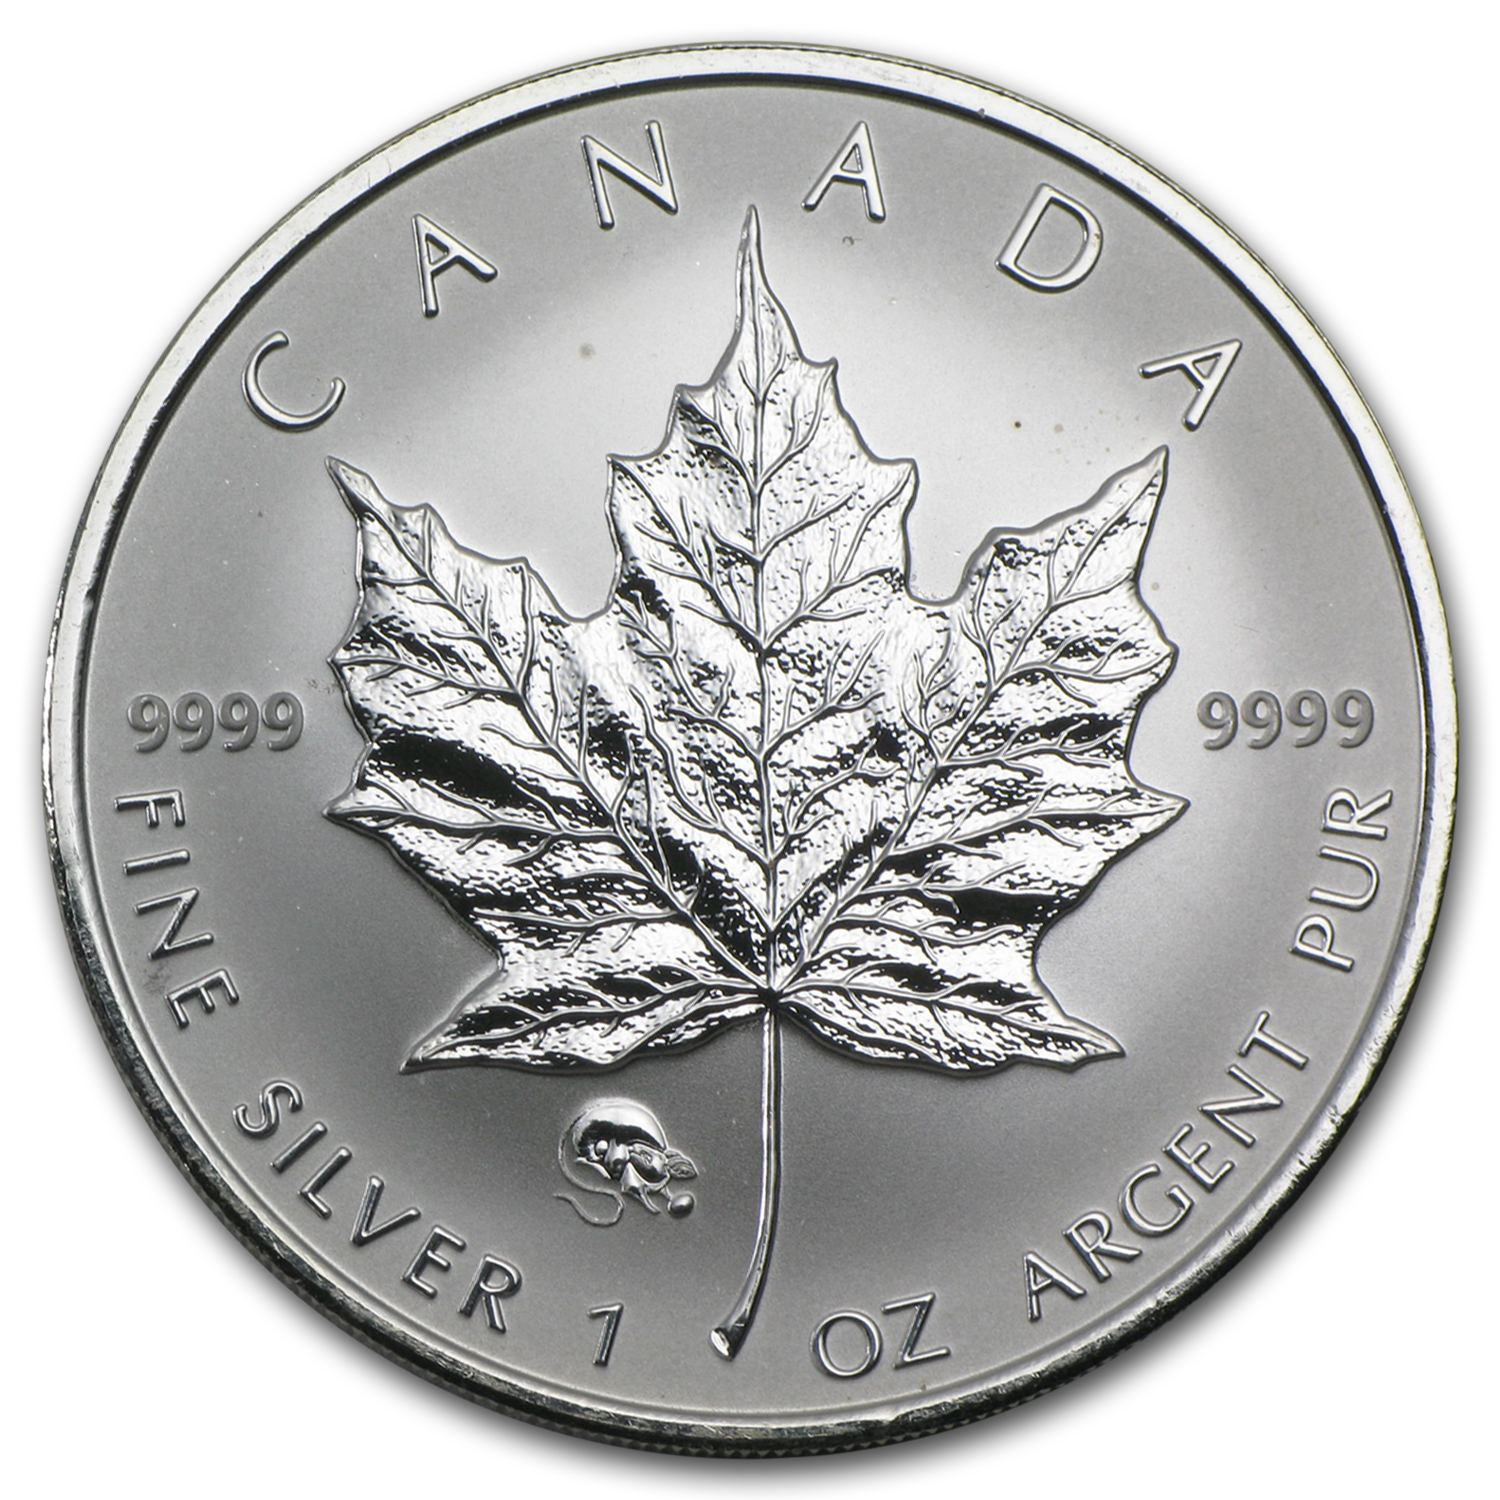 2008 Canada 1 oz Silver Maple Leaf Lunar RAT Privy